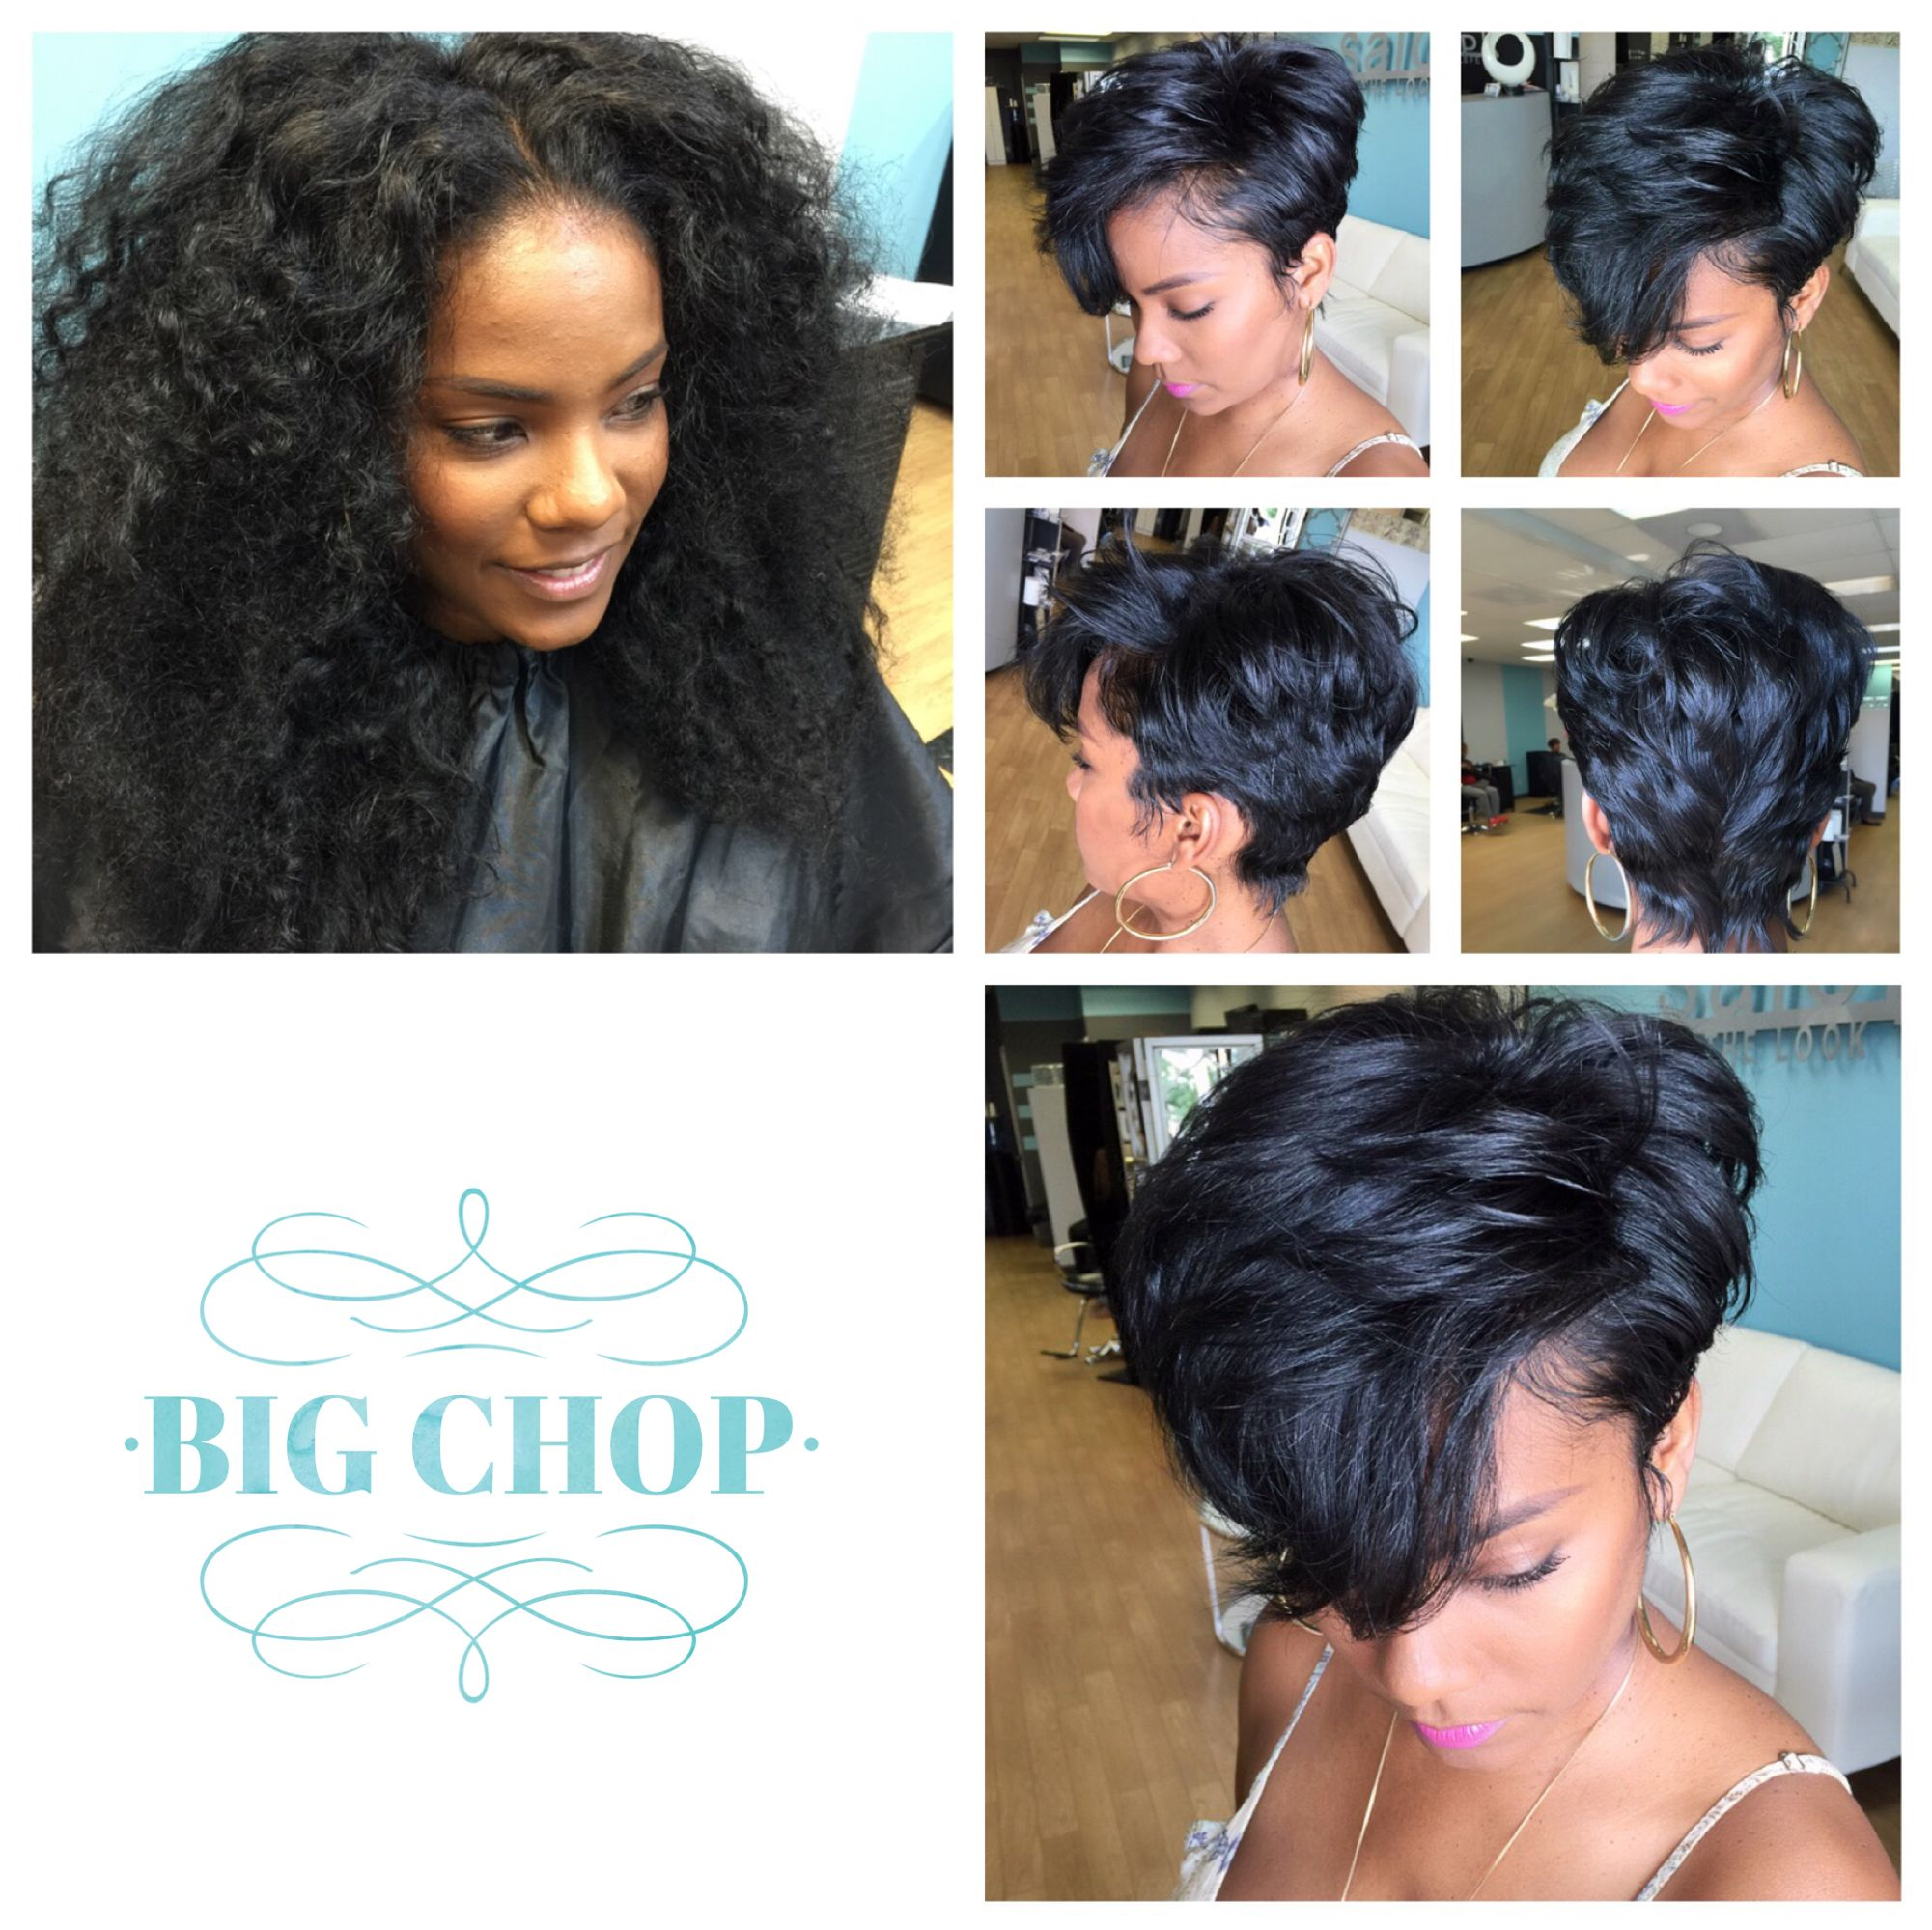 Short hairstyles short haircuts shorthaircuts for black women